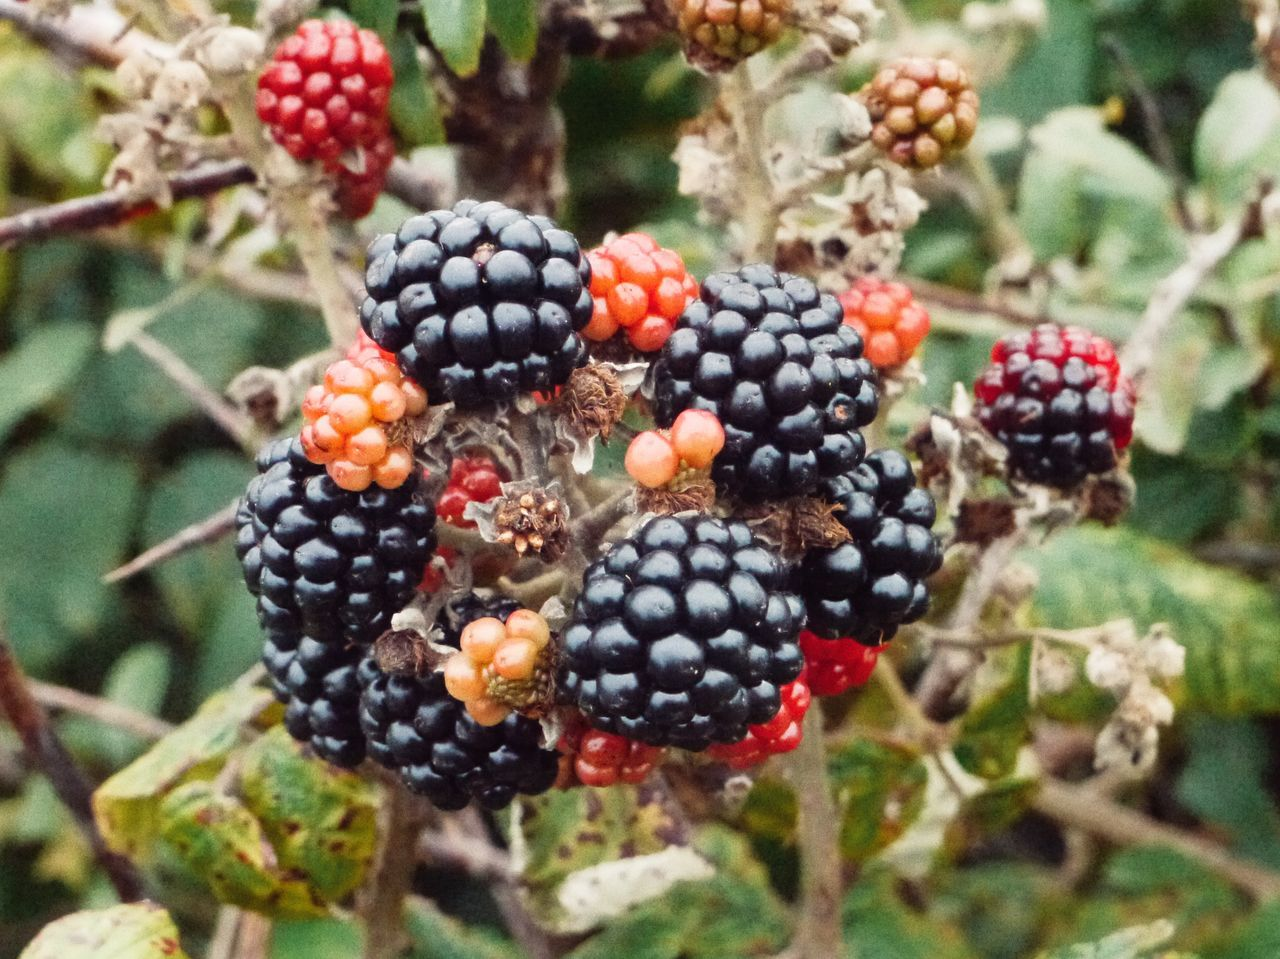 fruit, food and drink, berry fruit, blackberry, nature, focus on foreground, no people, growth, food, outdoors, close-up, day, freshness, tree, healthy eating, plant, red, beauty in nature